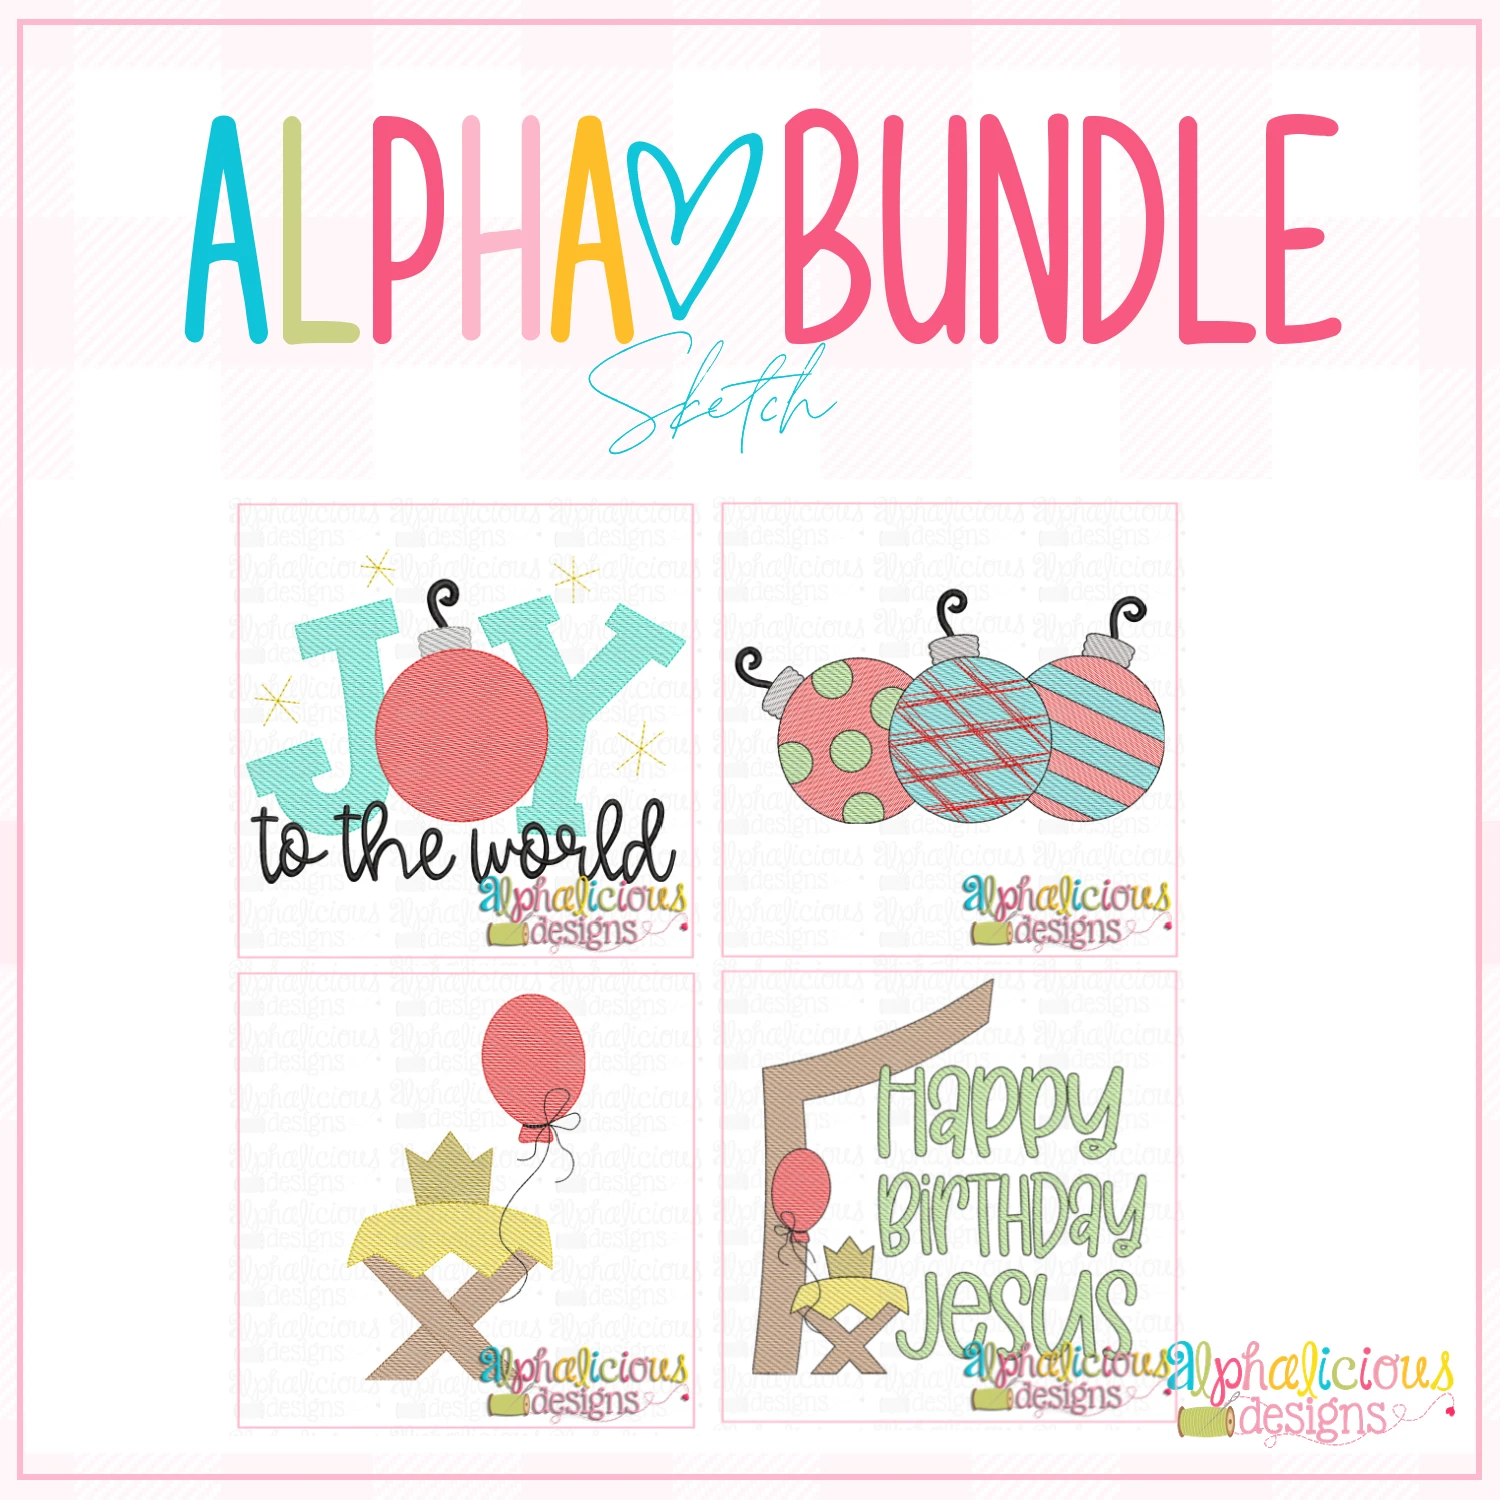 ALPHA BUNDLE-10-30-20 Release-Sketch